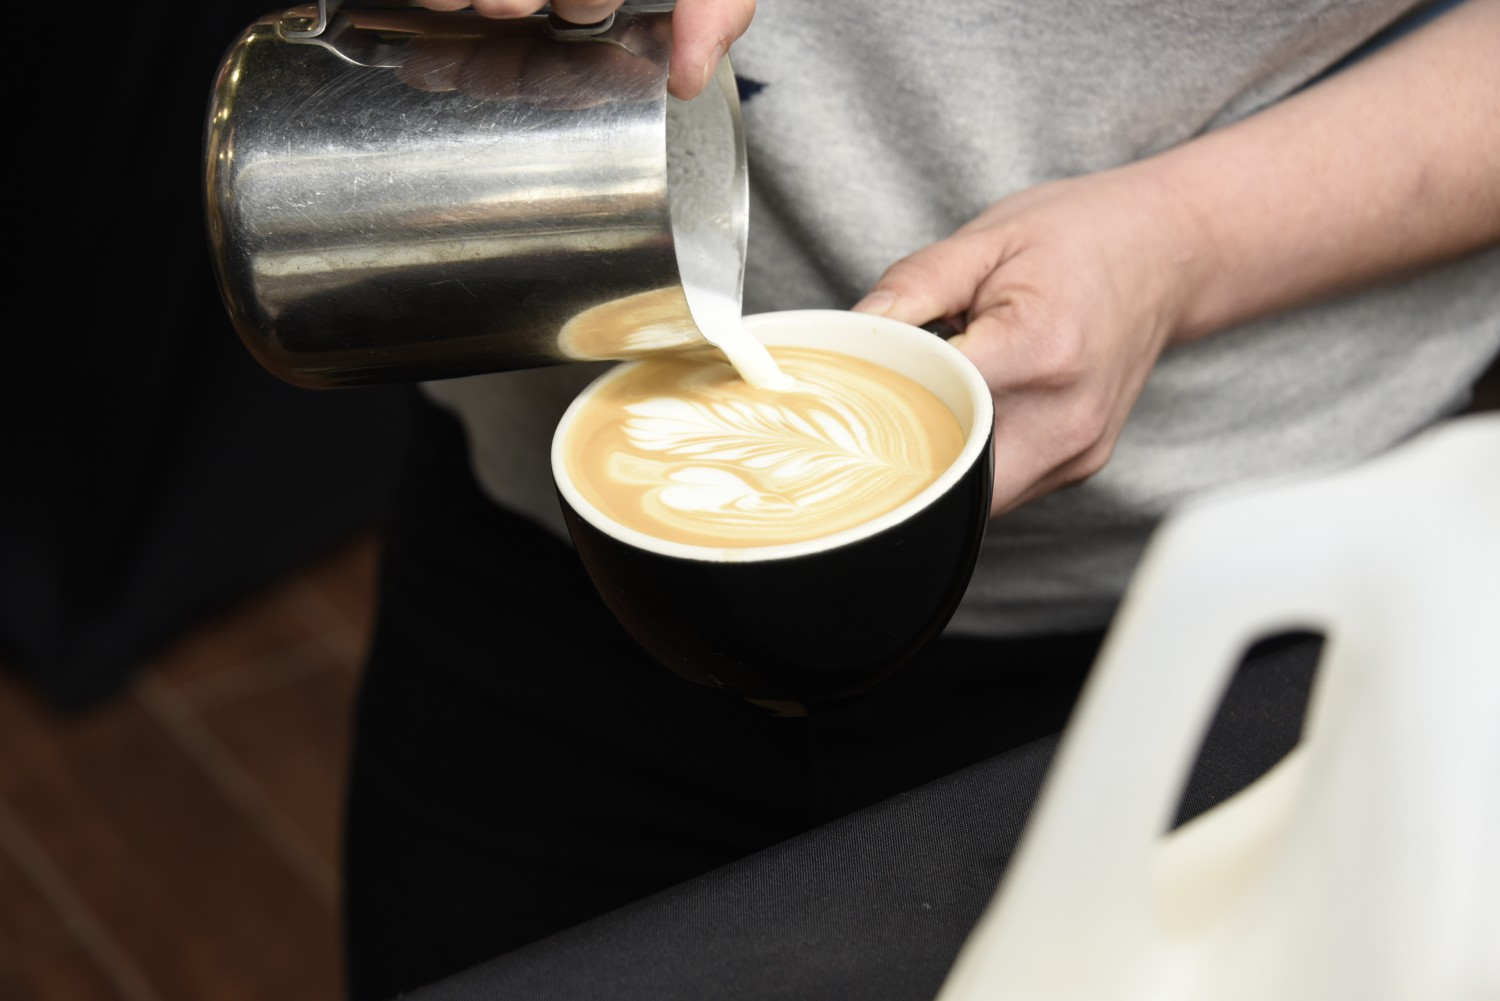 Coffee served at last year's Coffee and Tea Festival. (Karl Mischler)